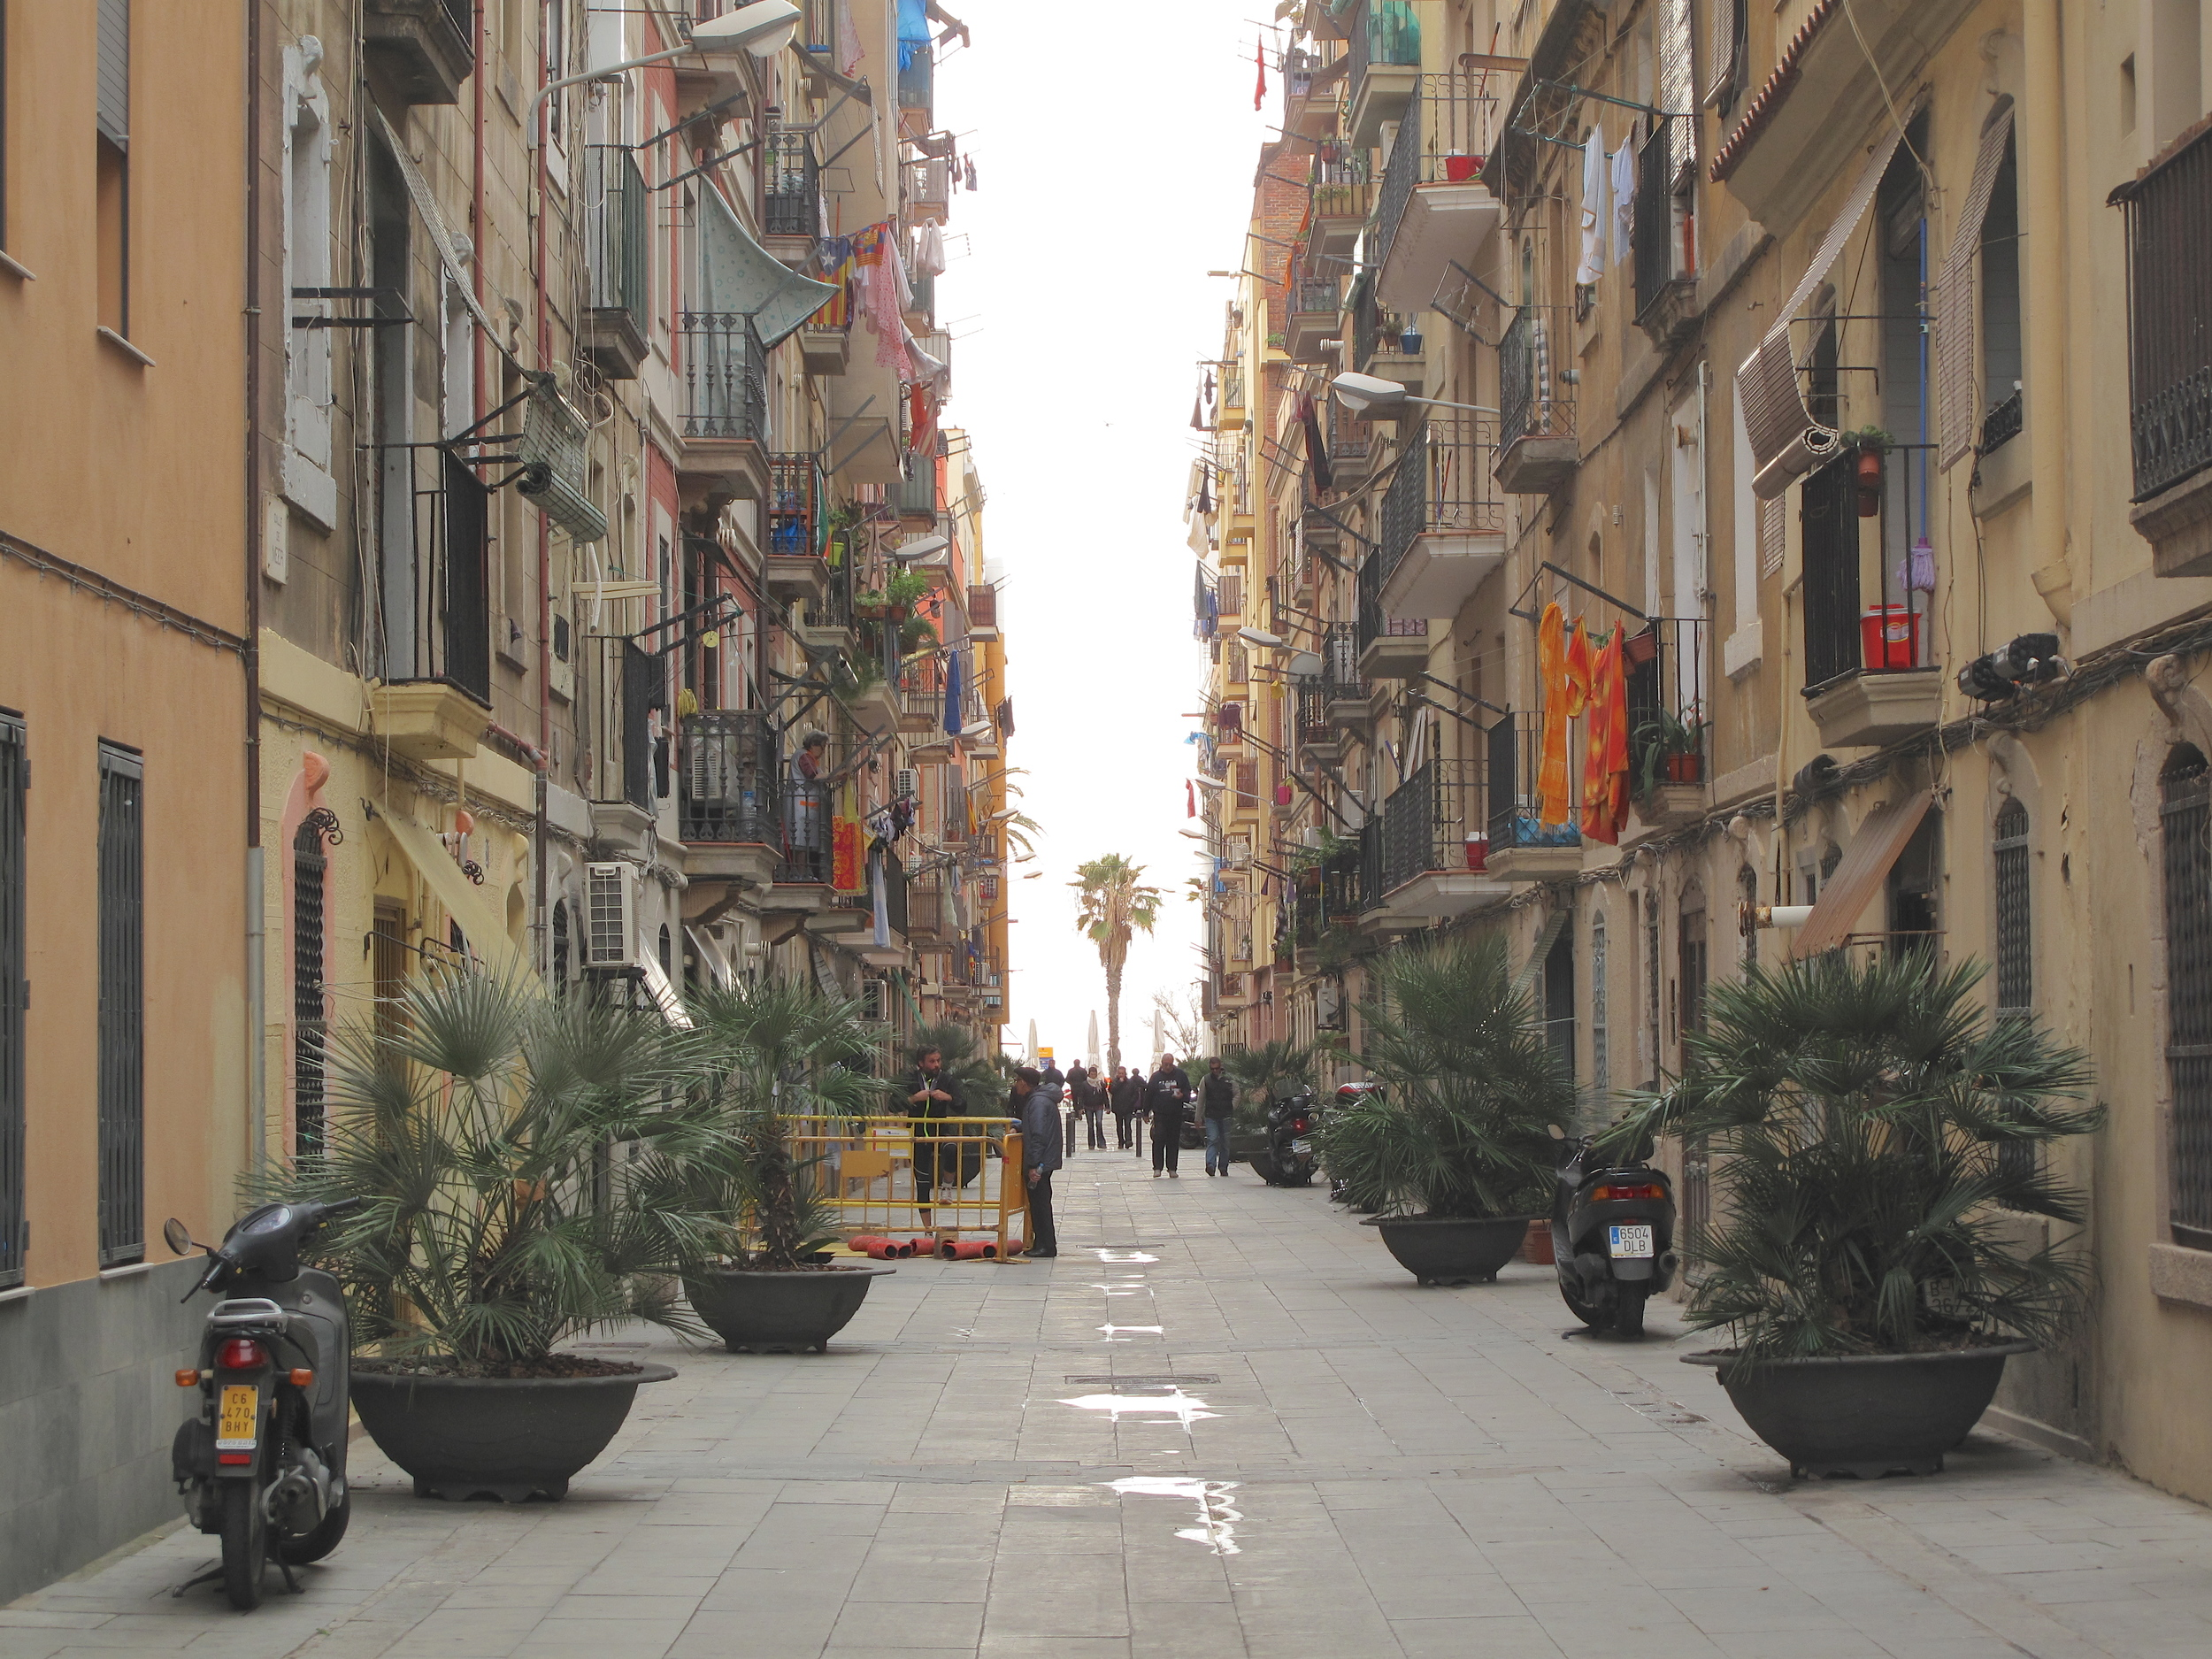 An alleyway in Barcelona, with palm trees and laundry on the balconies.